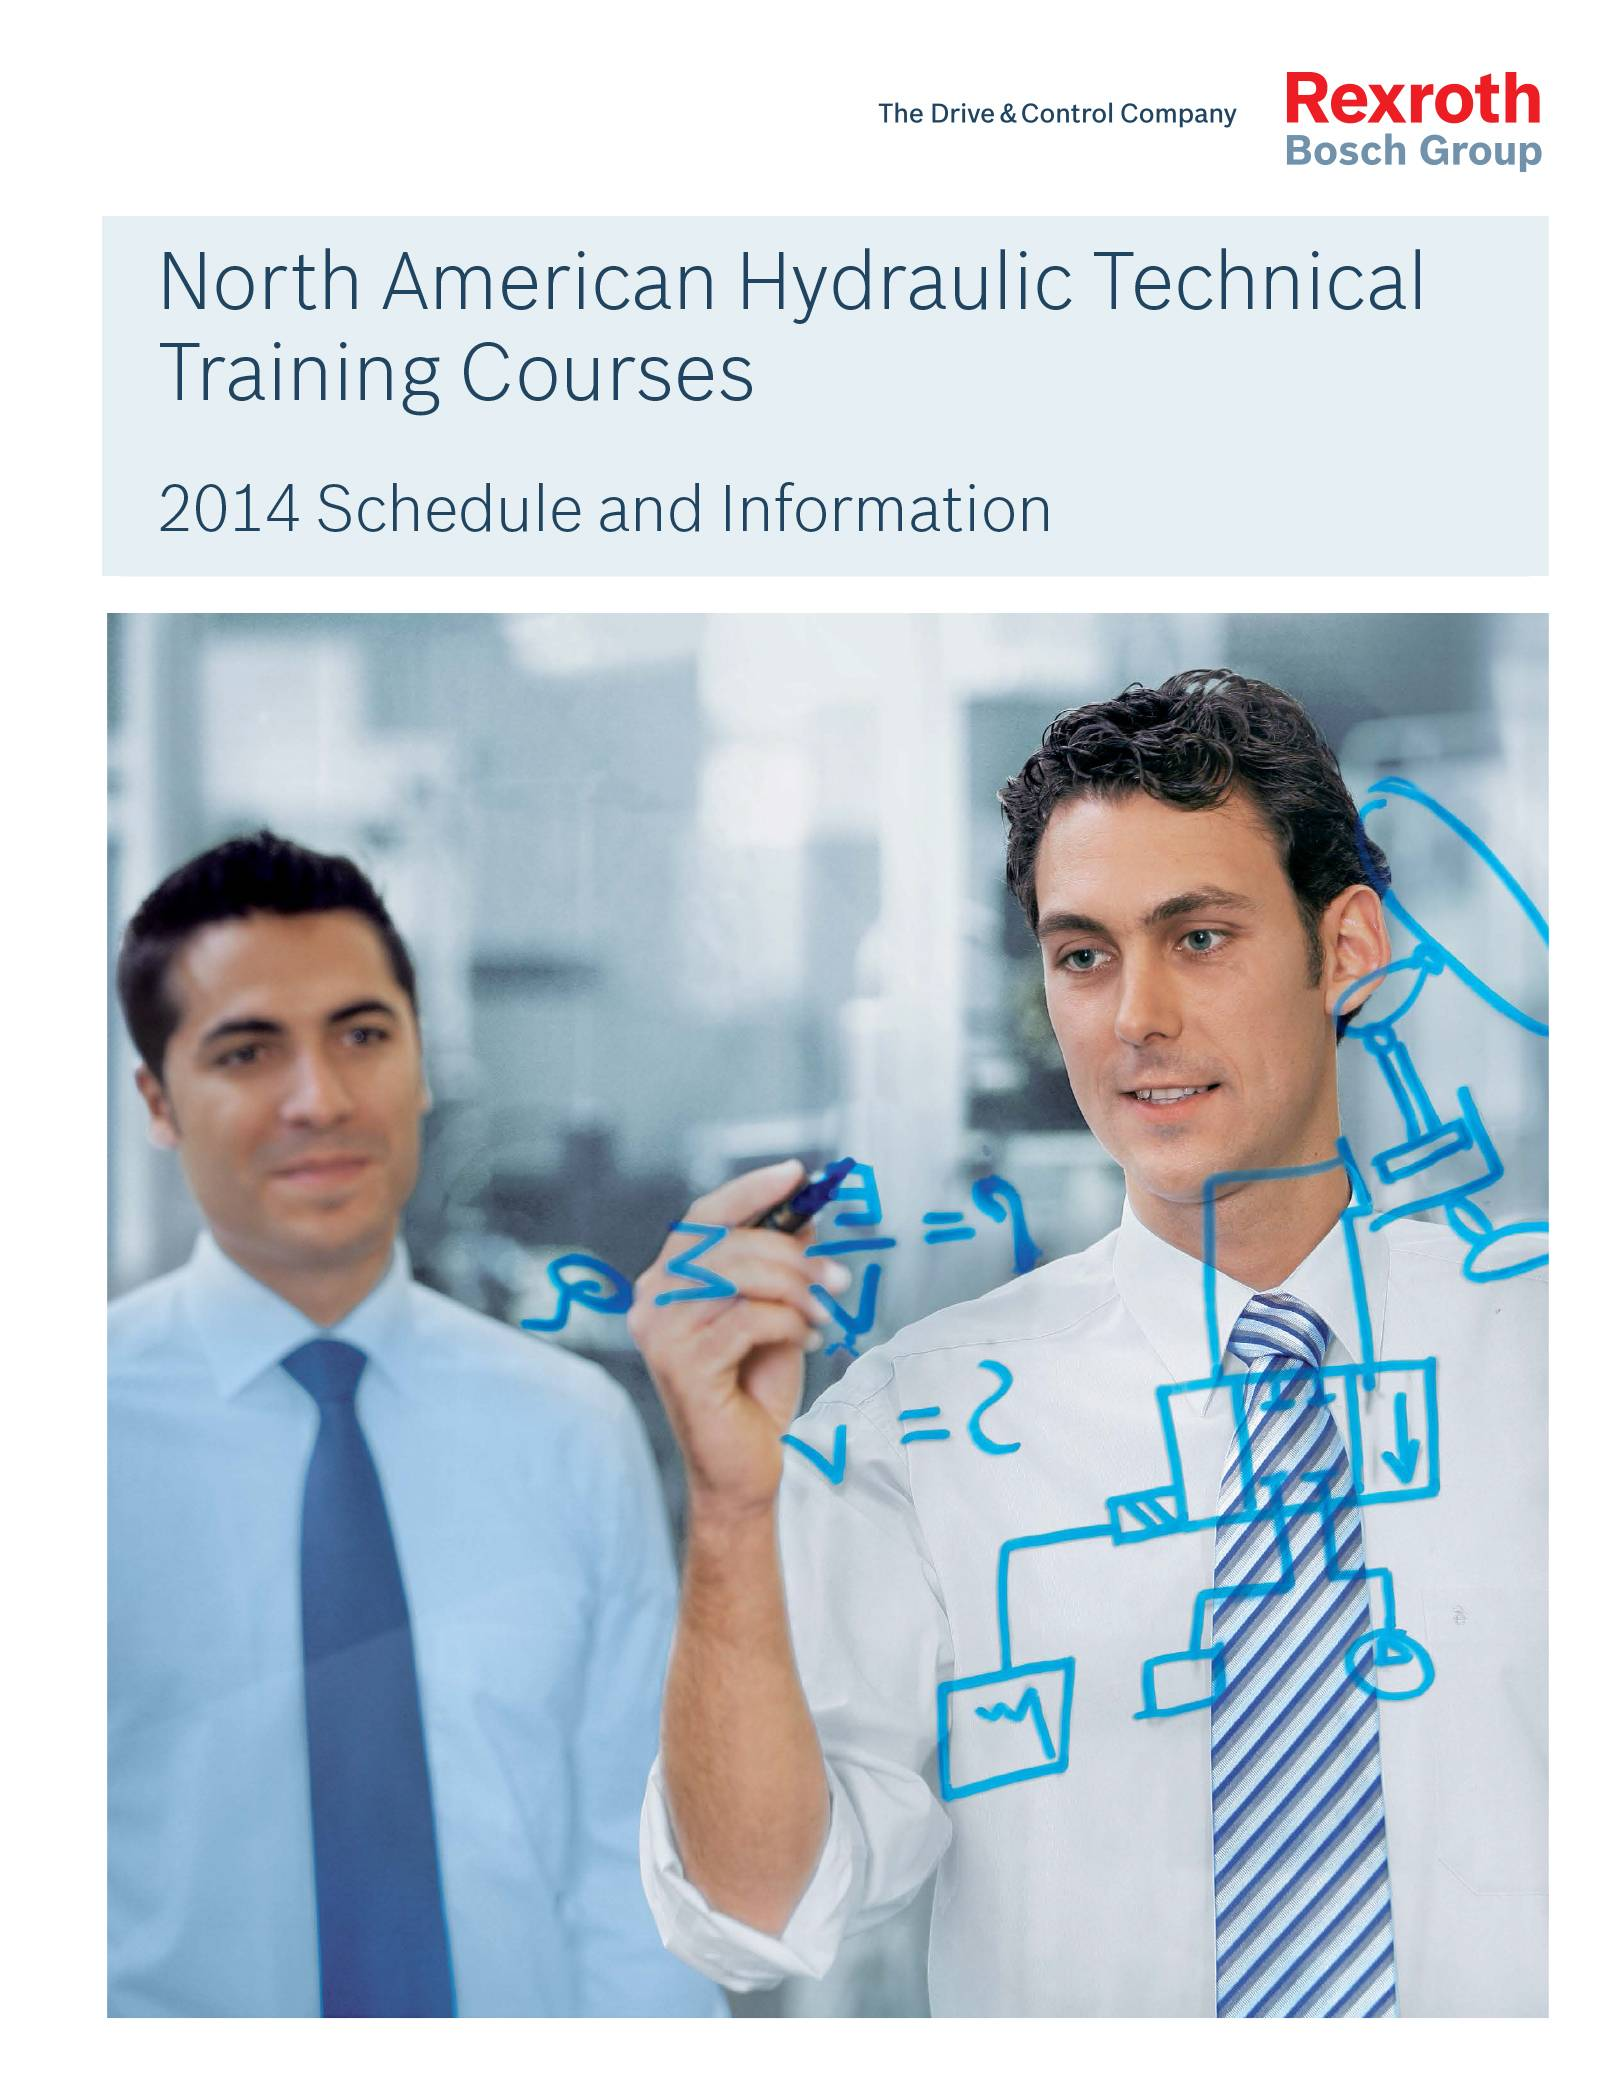 Bosch Rexroth Hydraulics Training Courses Available